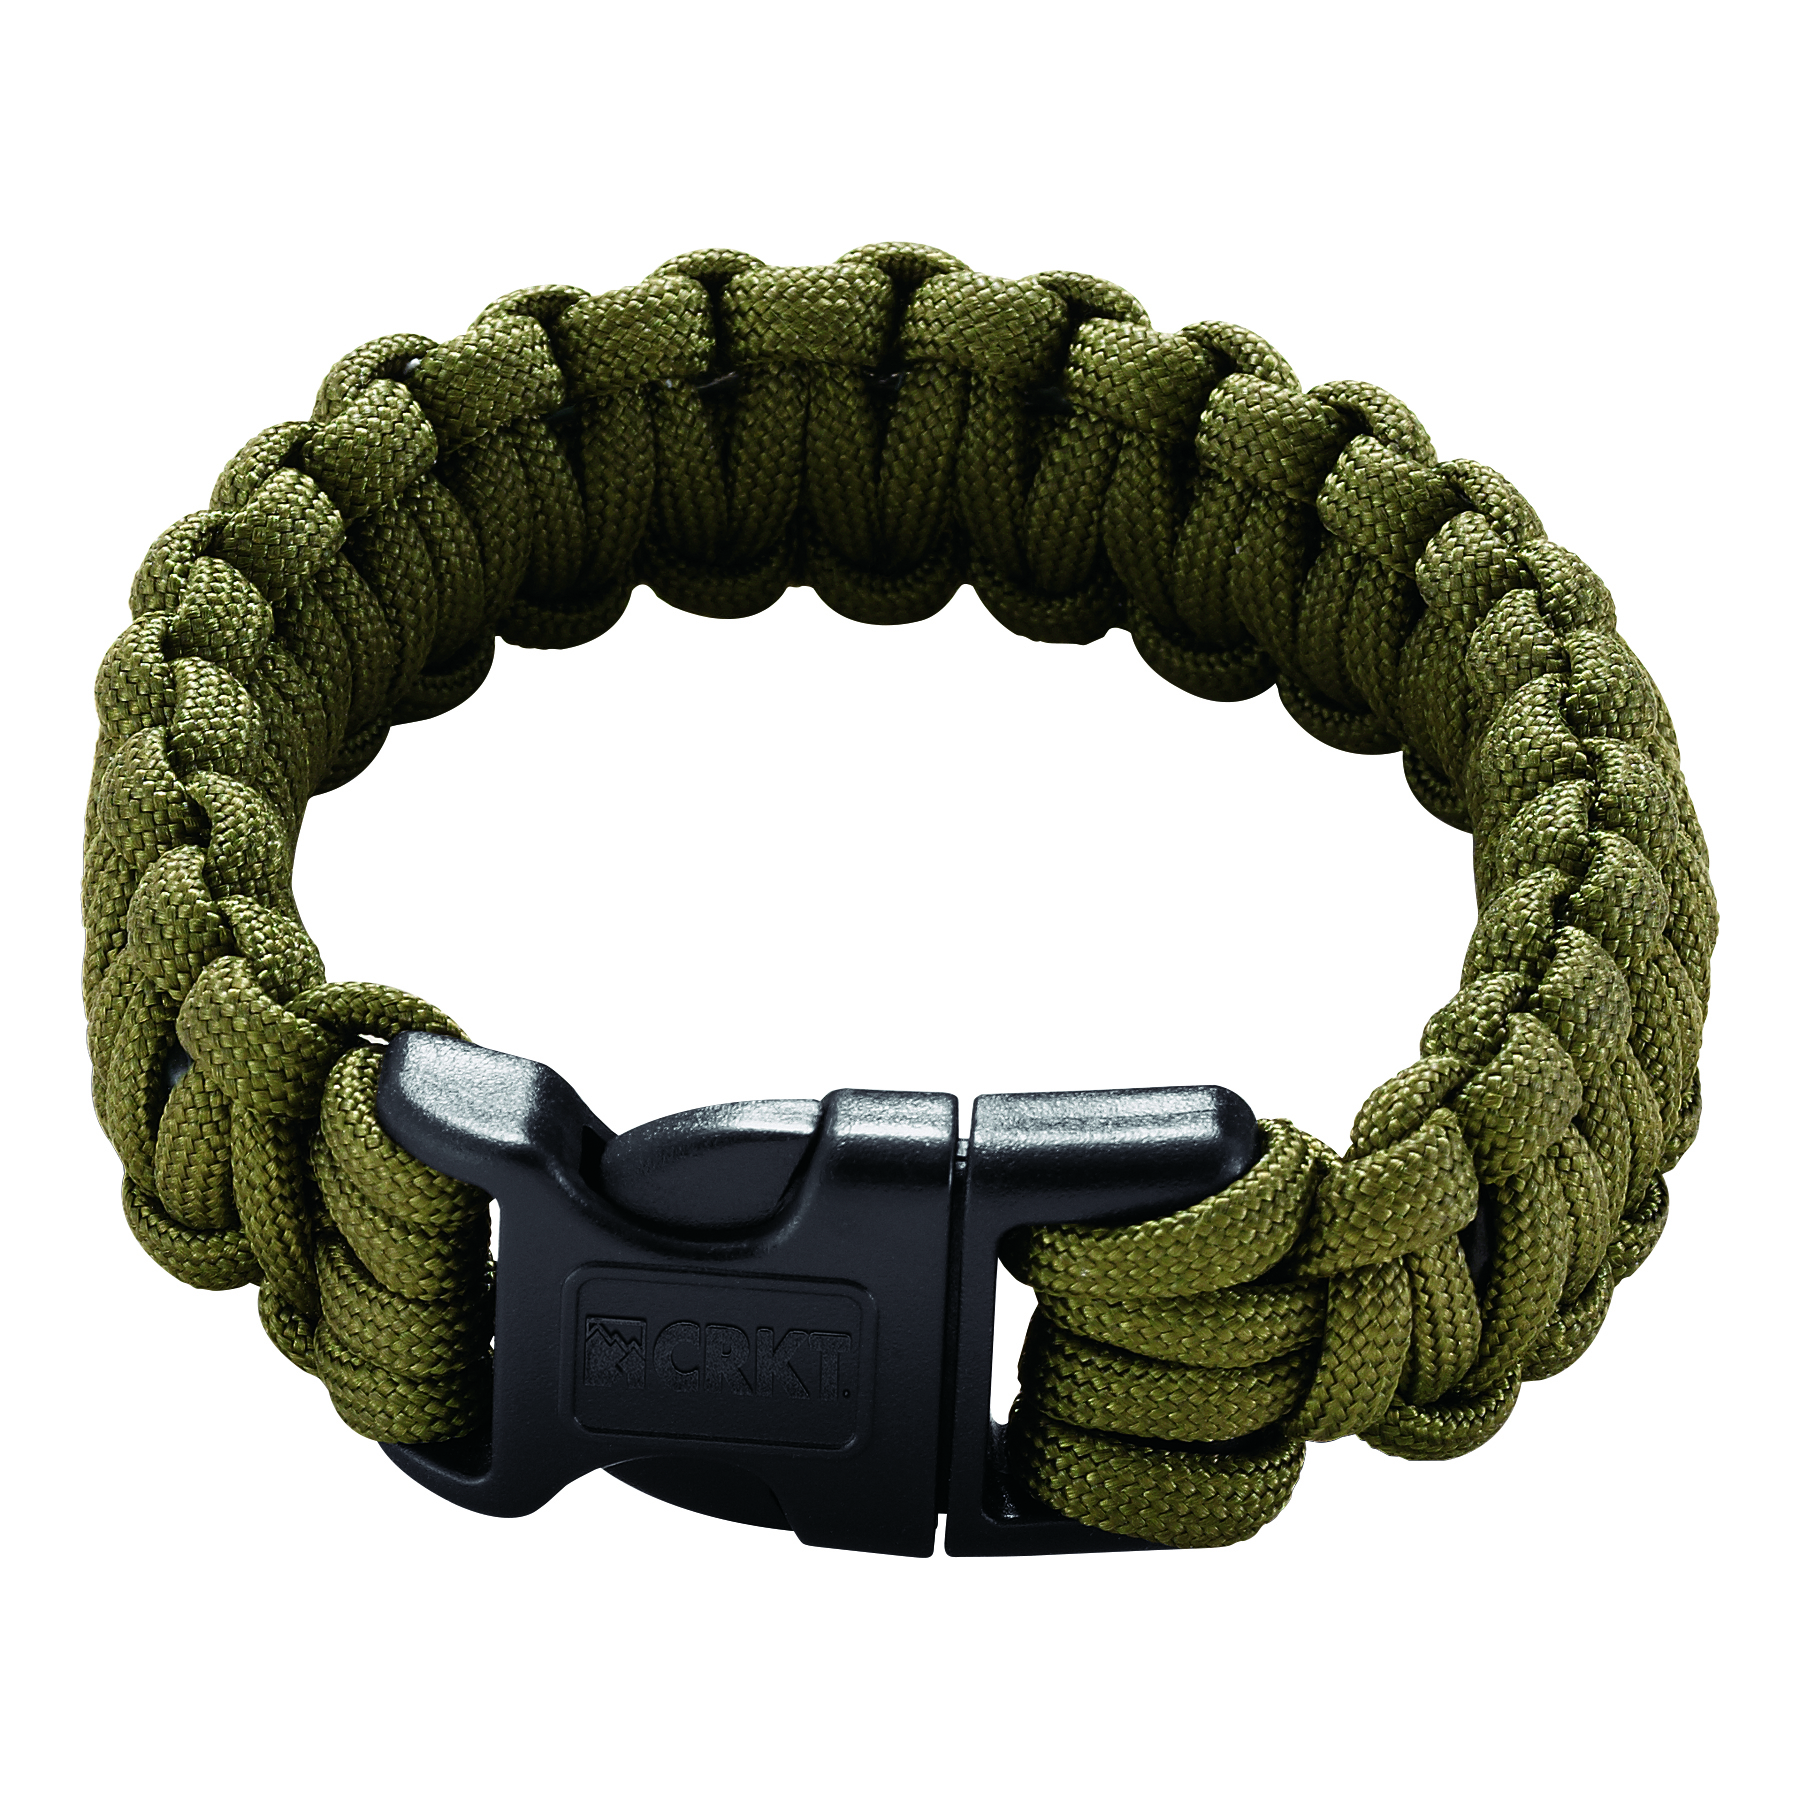 9300DS - CRKT Para-Saw Survival Bracelet Green